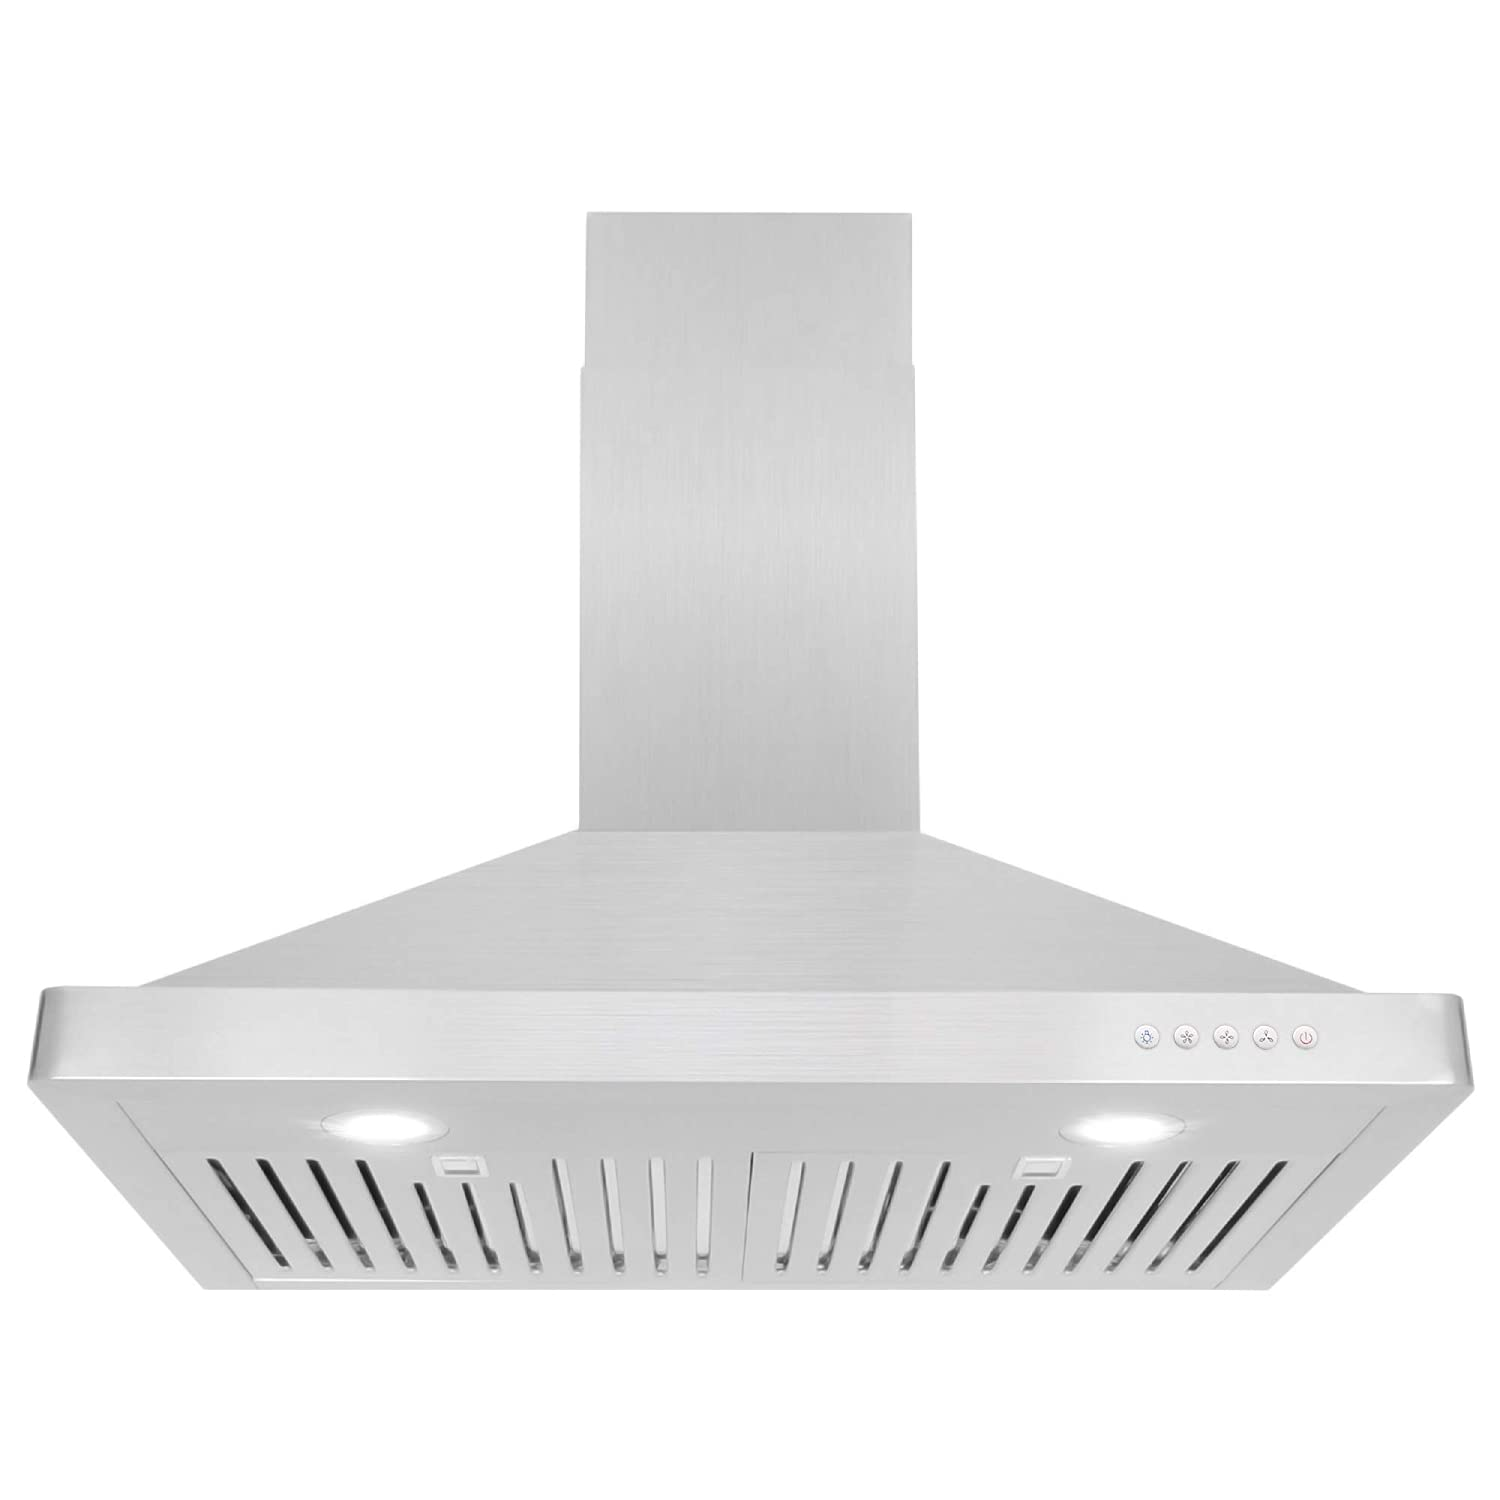 Cosmo 63175 30-in Wall-Mount Range Hood 760-CFM Ductless Convertible Duct Kitchen Chimney-Style Over Stove Vent LED Light, 3 Speed Exhaust Fan, Permanent Filter (Stainless Steel)